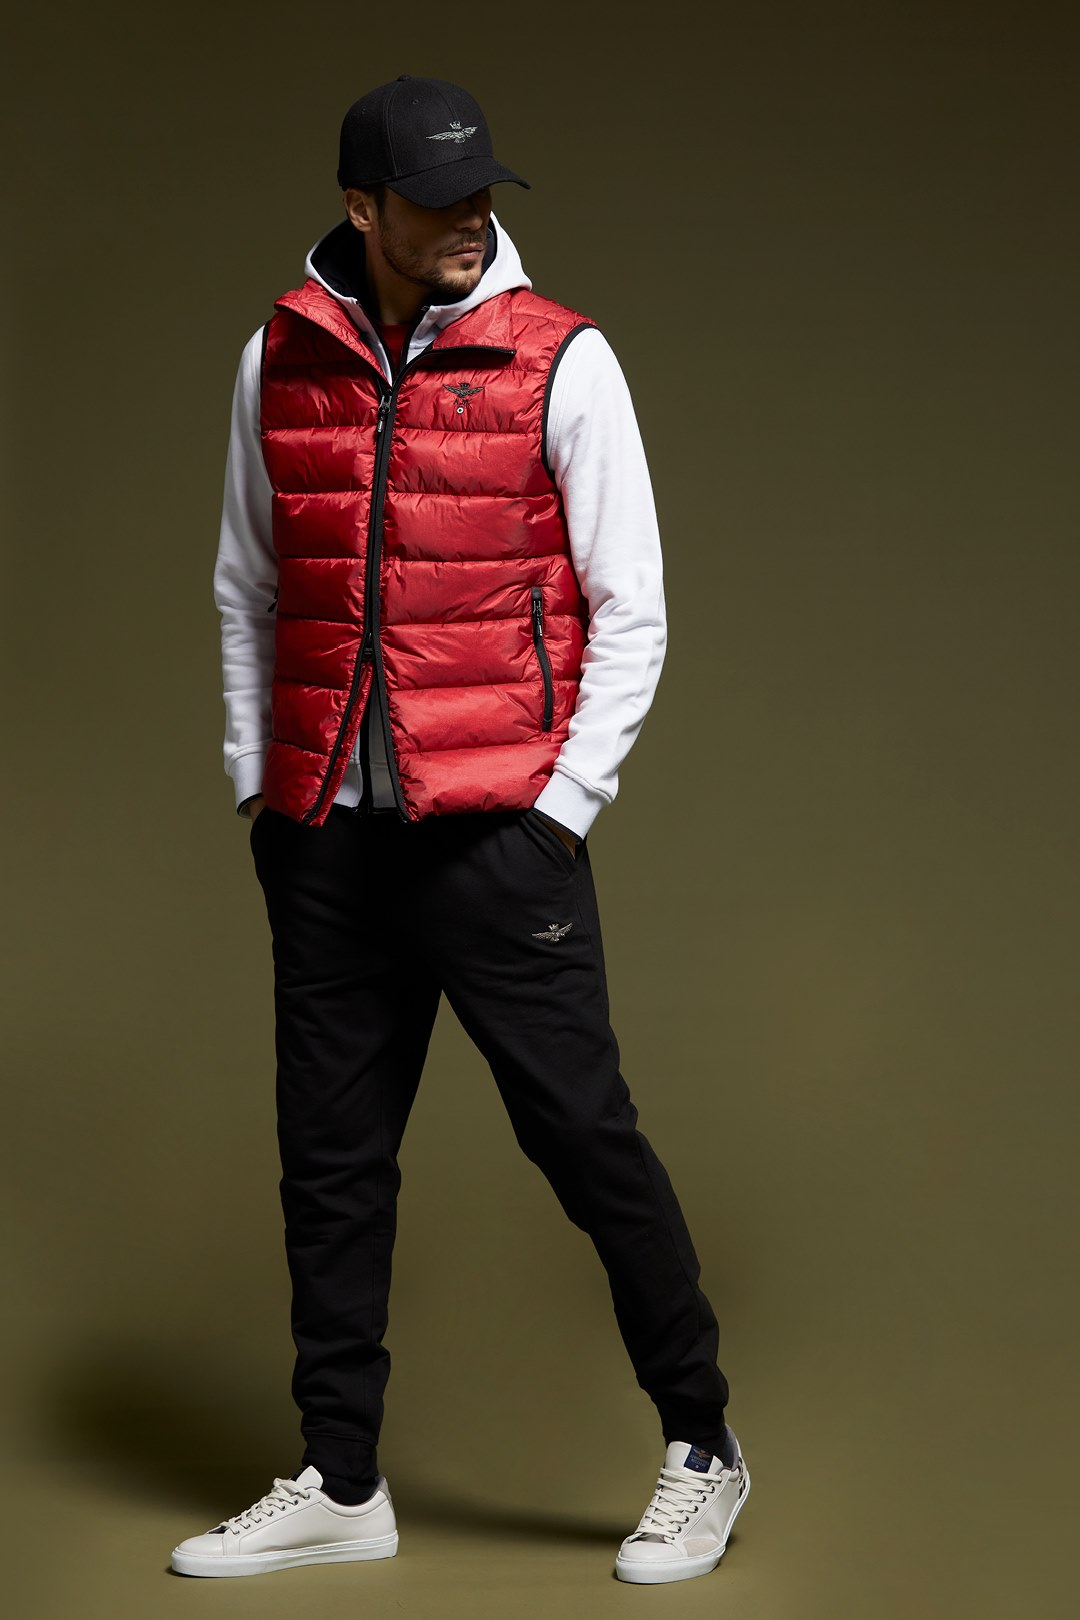 Padded vest with ripstop fabric          4